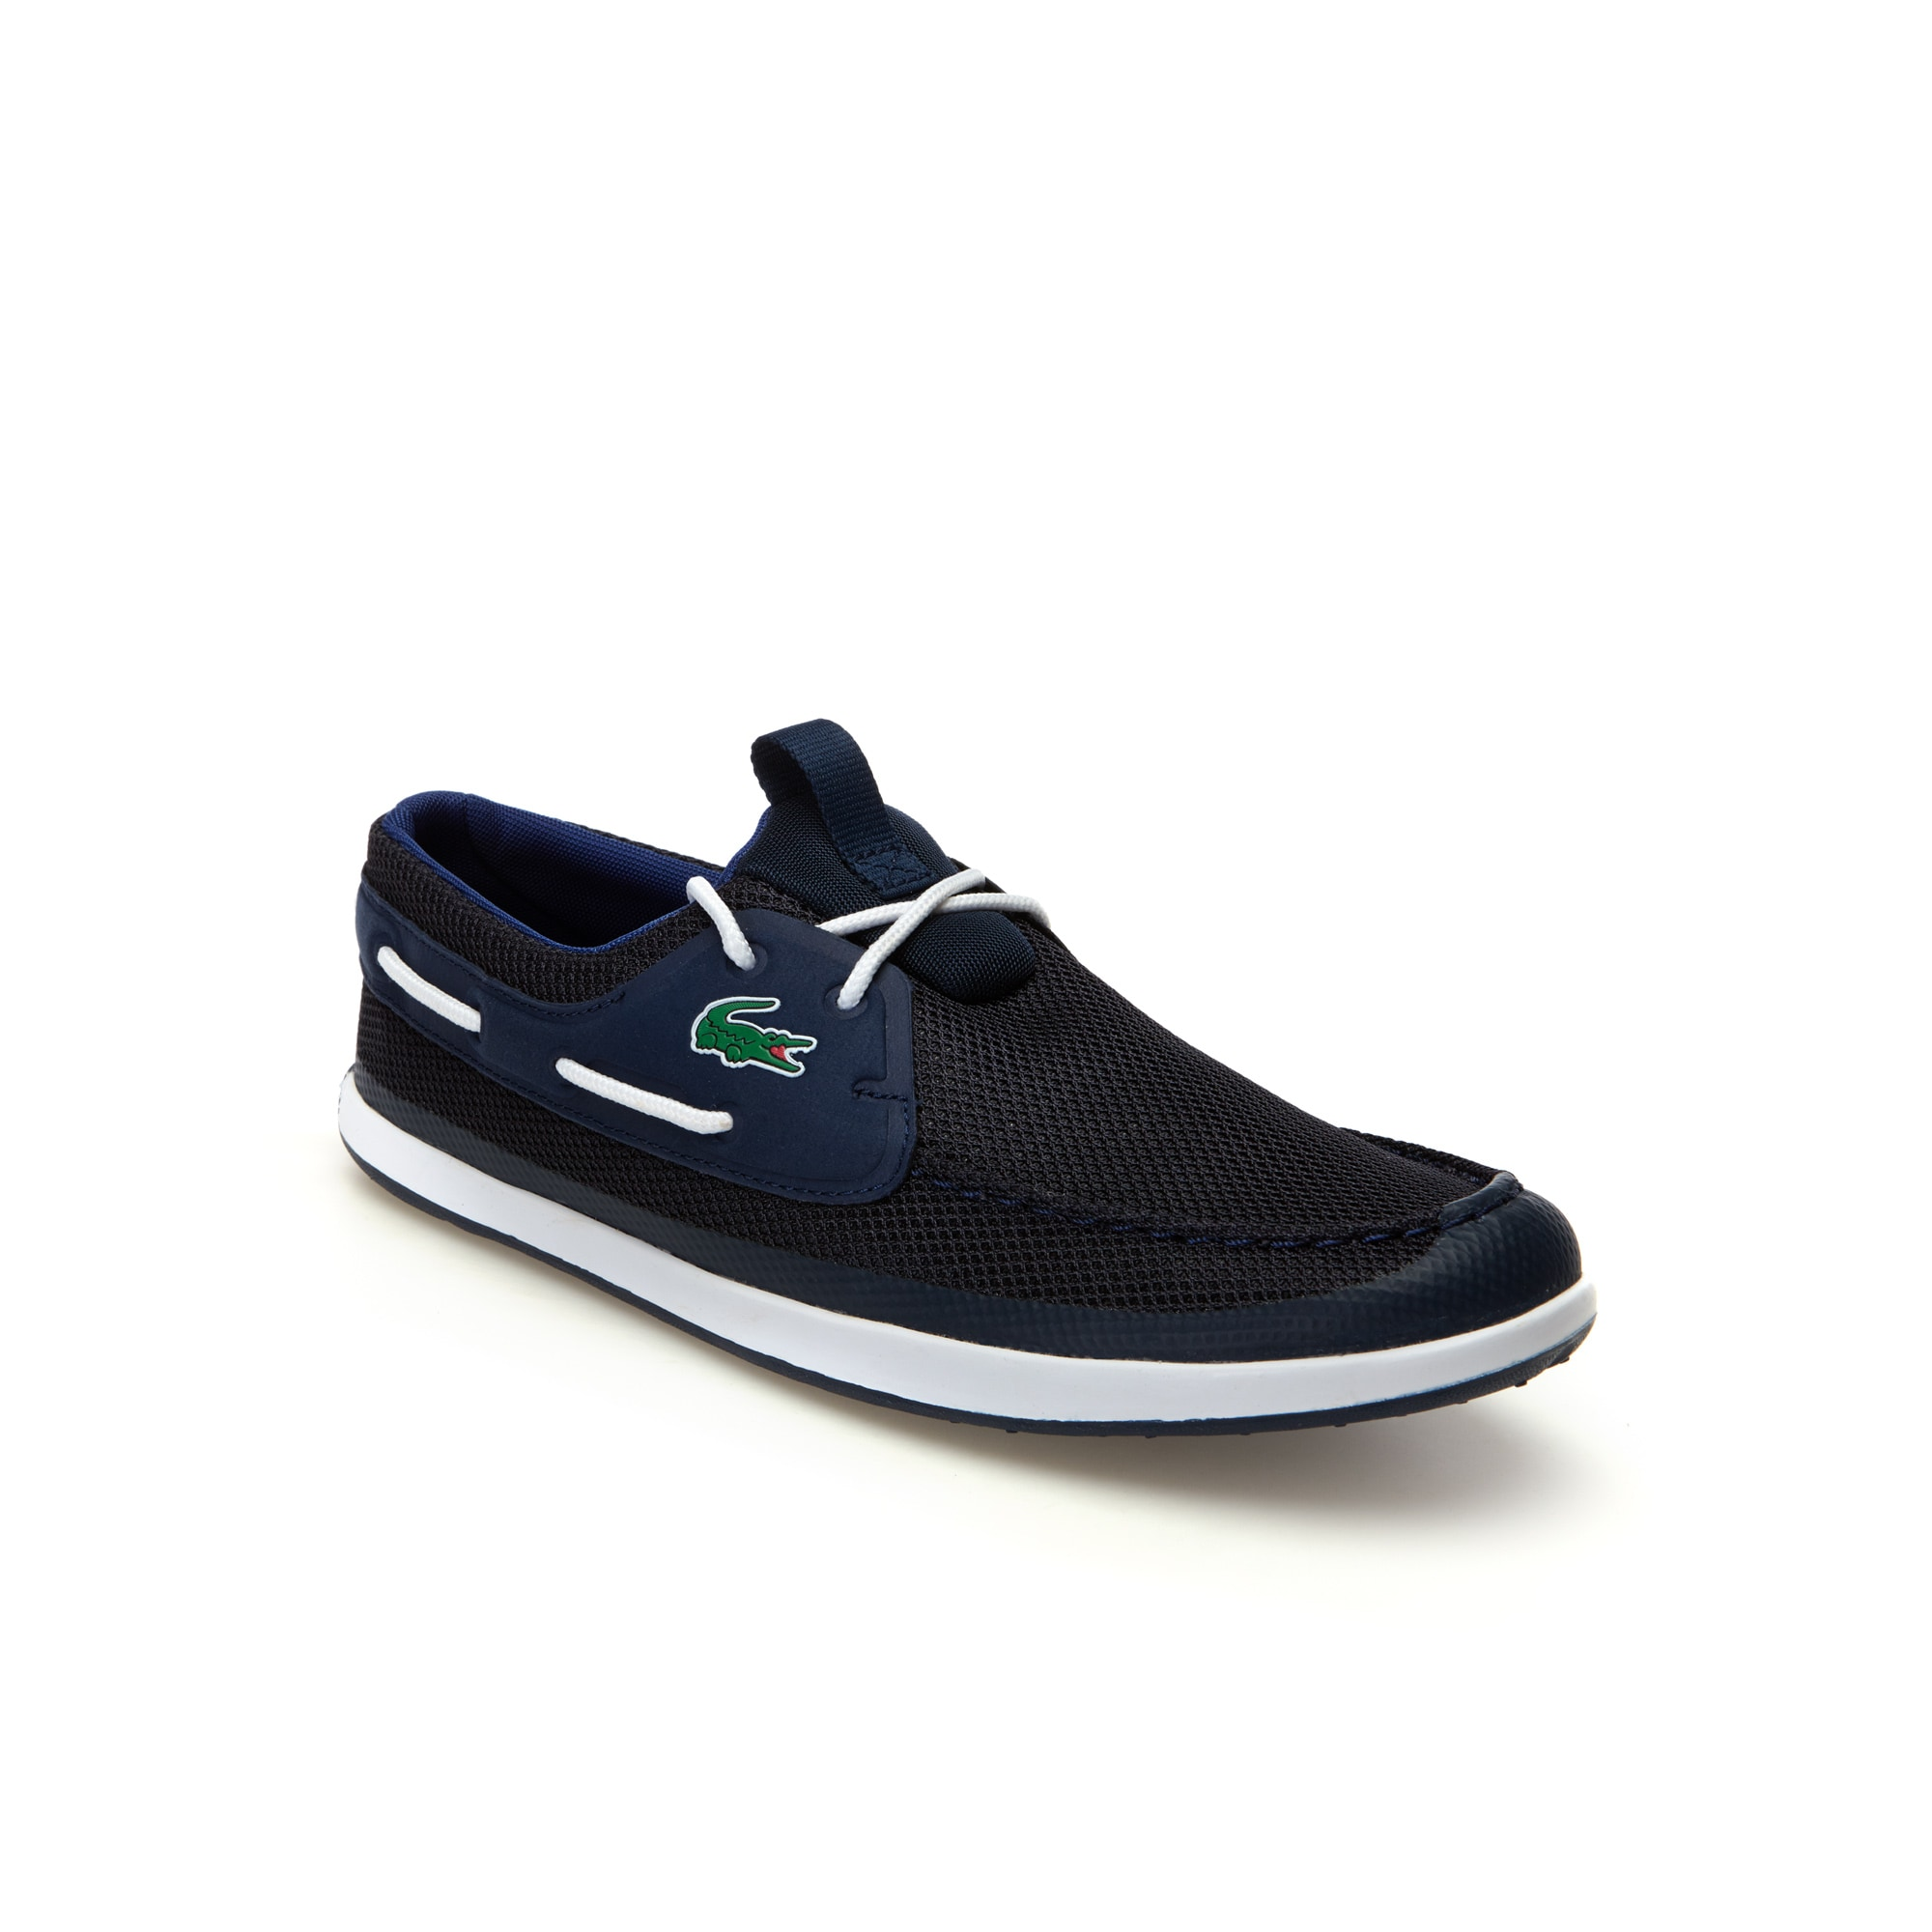 Men's Landsailing Textile Boat Shoes